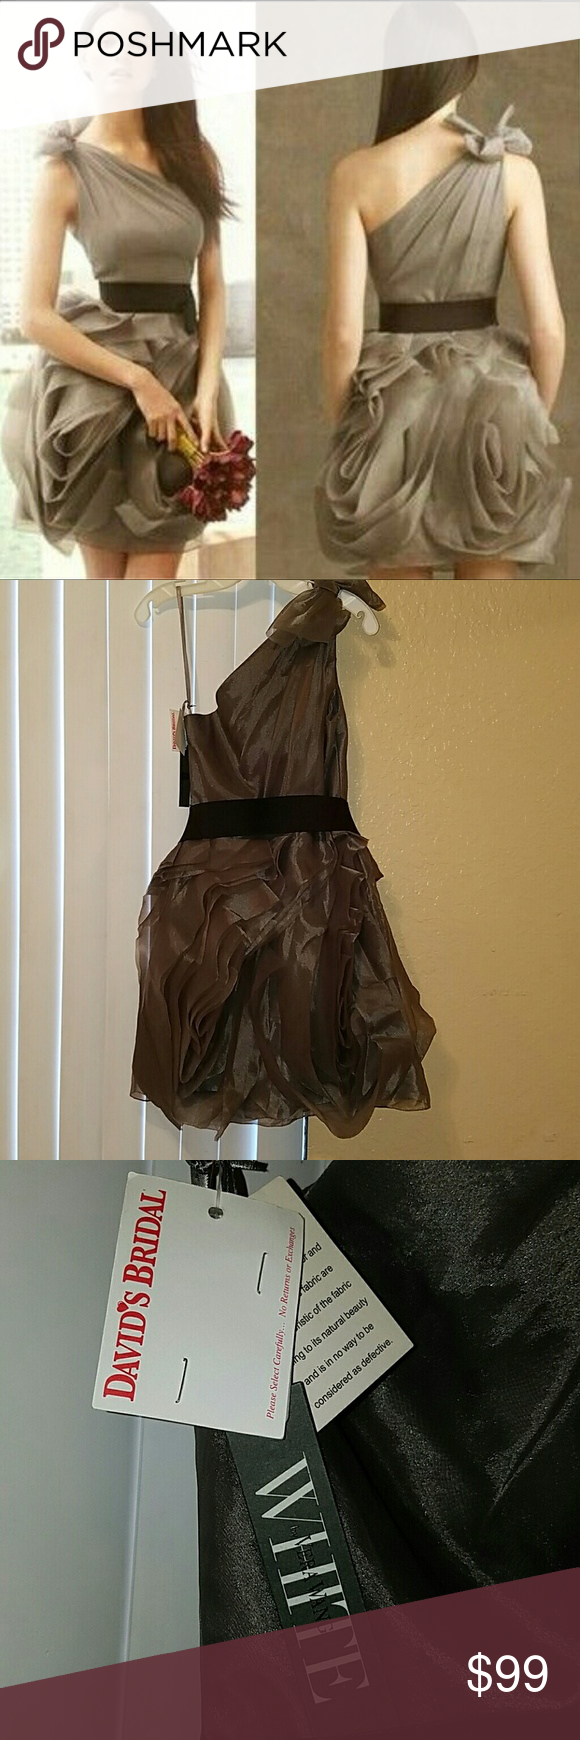 Brand New Never Worn  Vera Wang Bridesmaid dress Charcoal grey vera Wang organza bridesmaid dress.  Never worn. Tags still attached. Perfect for a cocktail dinner or wedding Vera Wang Dresses One Shoulder